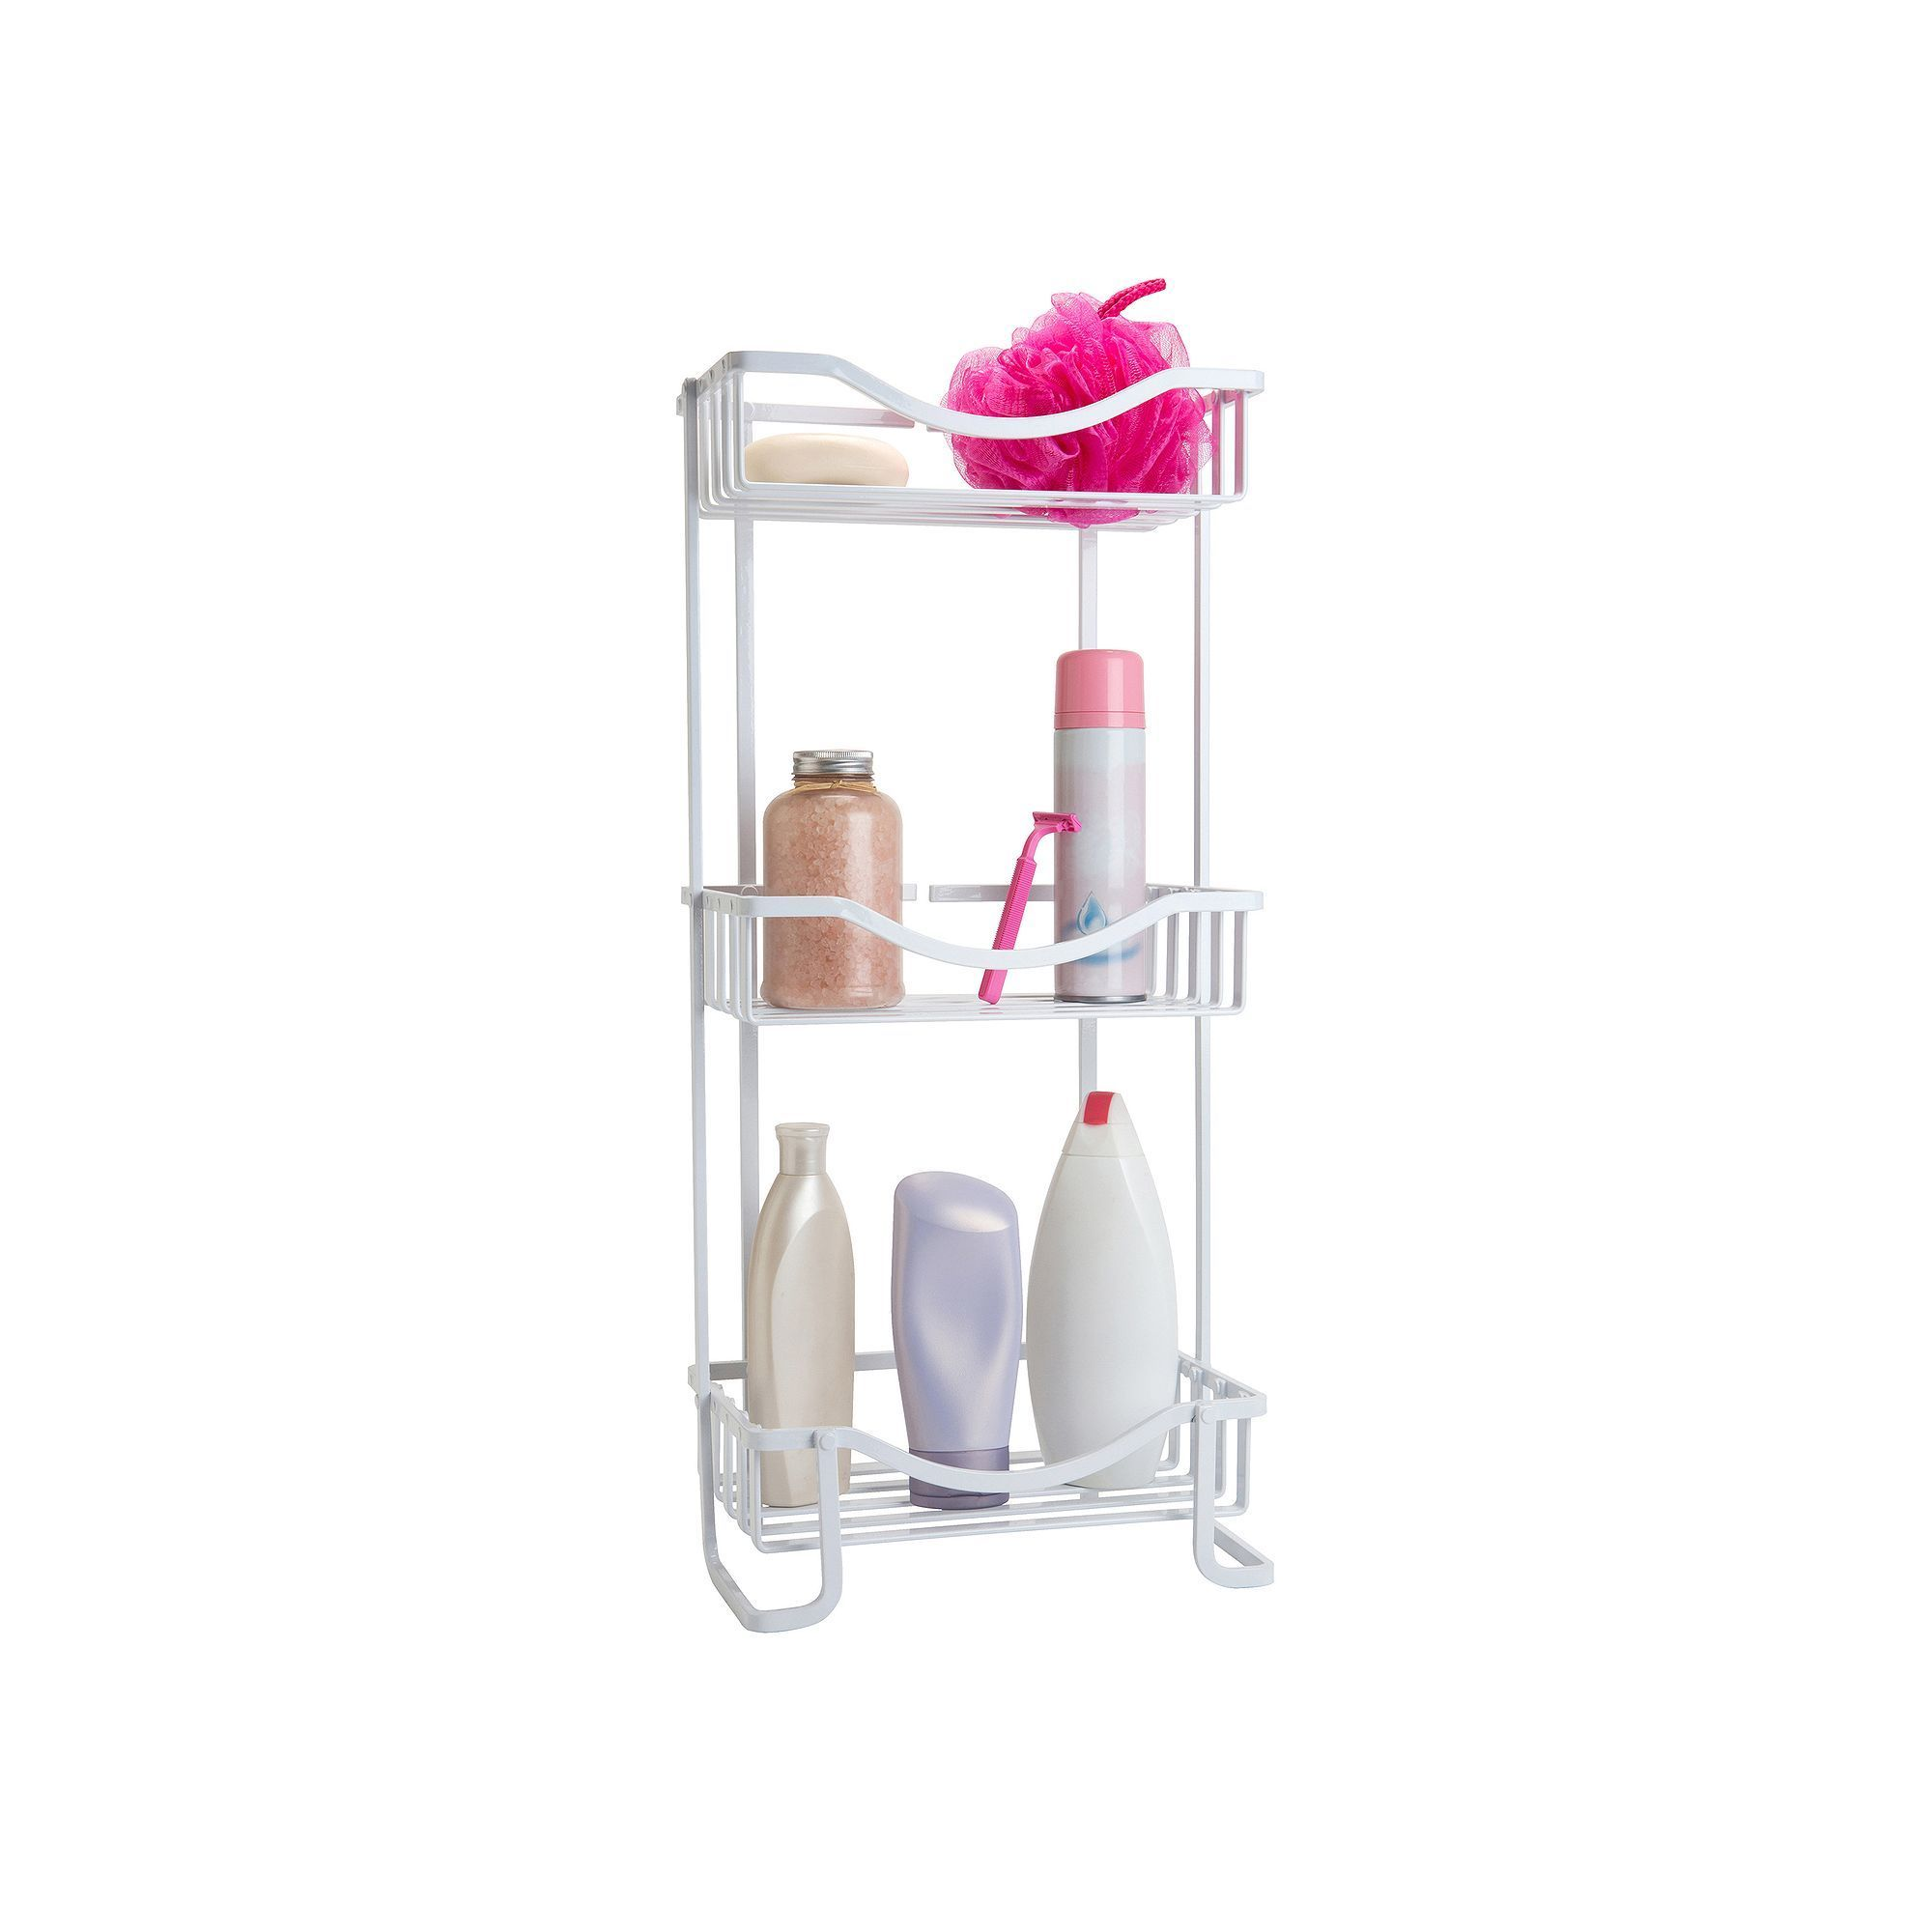 Bath Bliss Dip 3-Tier Spa Tower Stand, White | Products | Pinterest ...